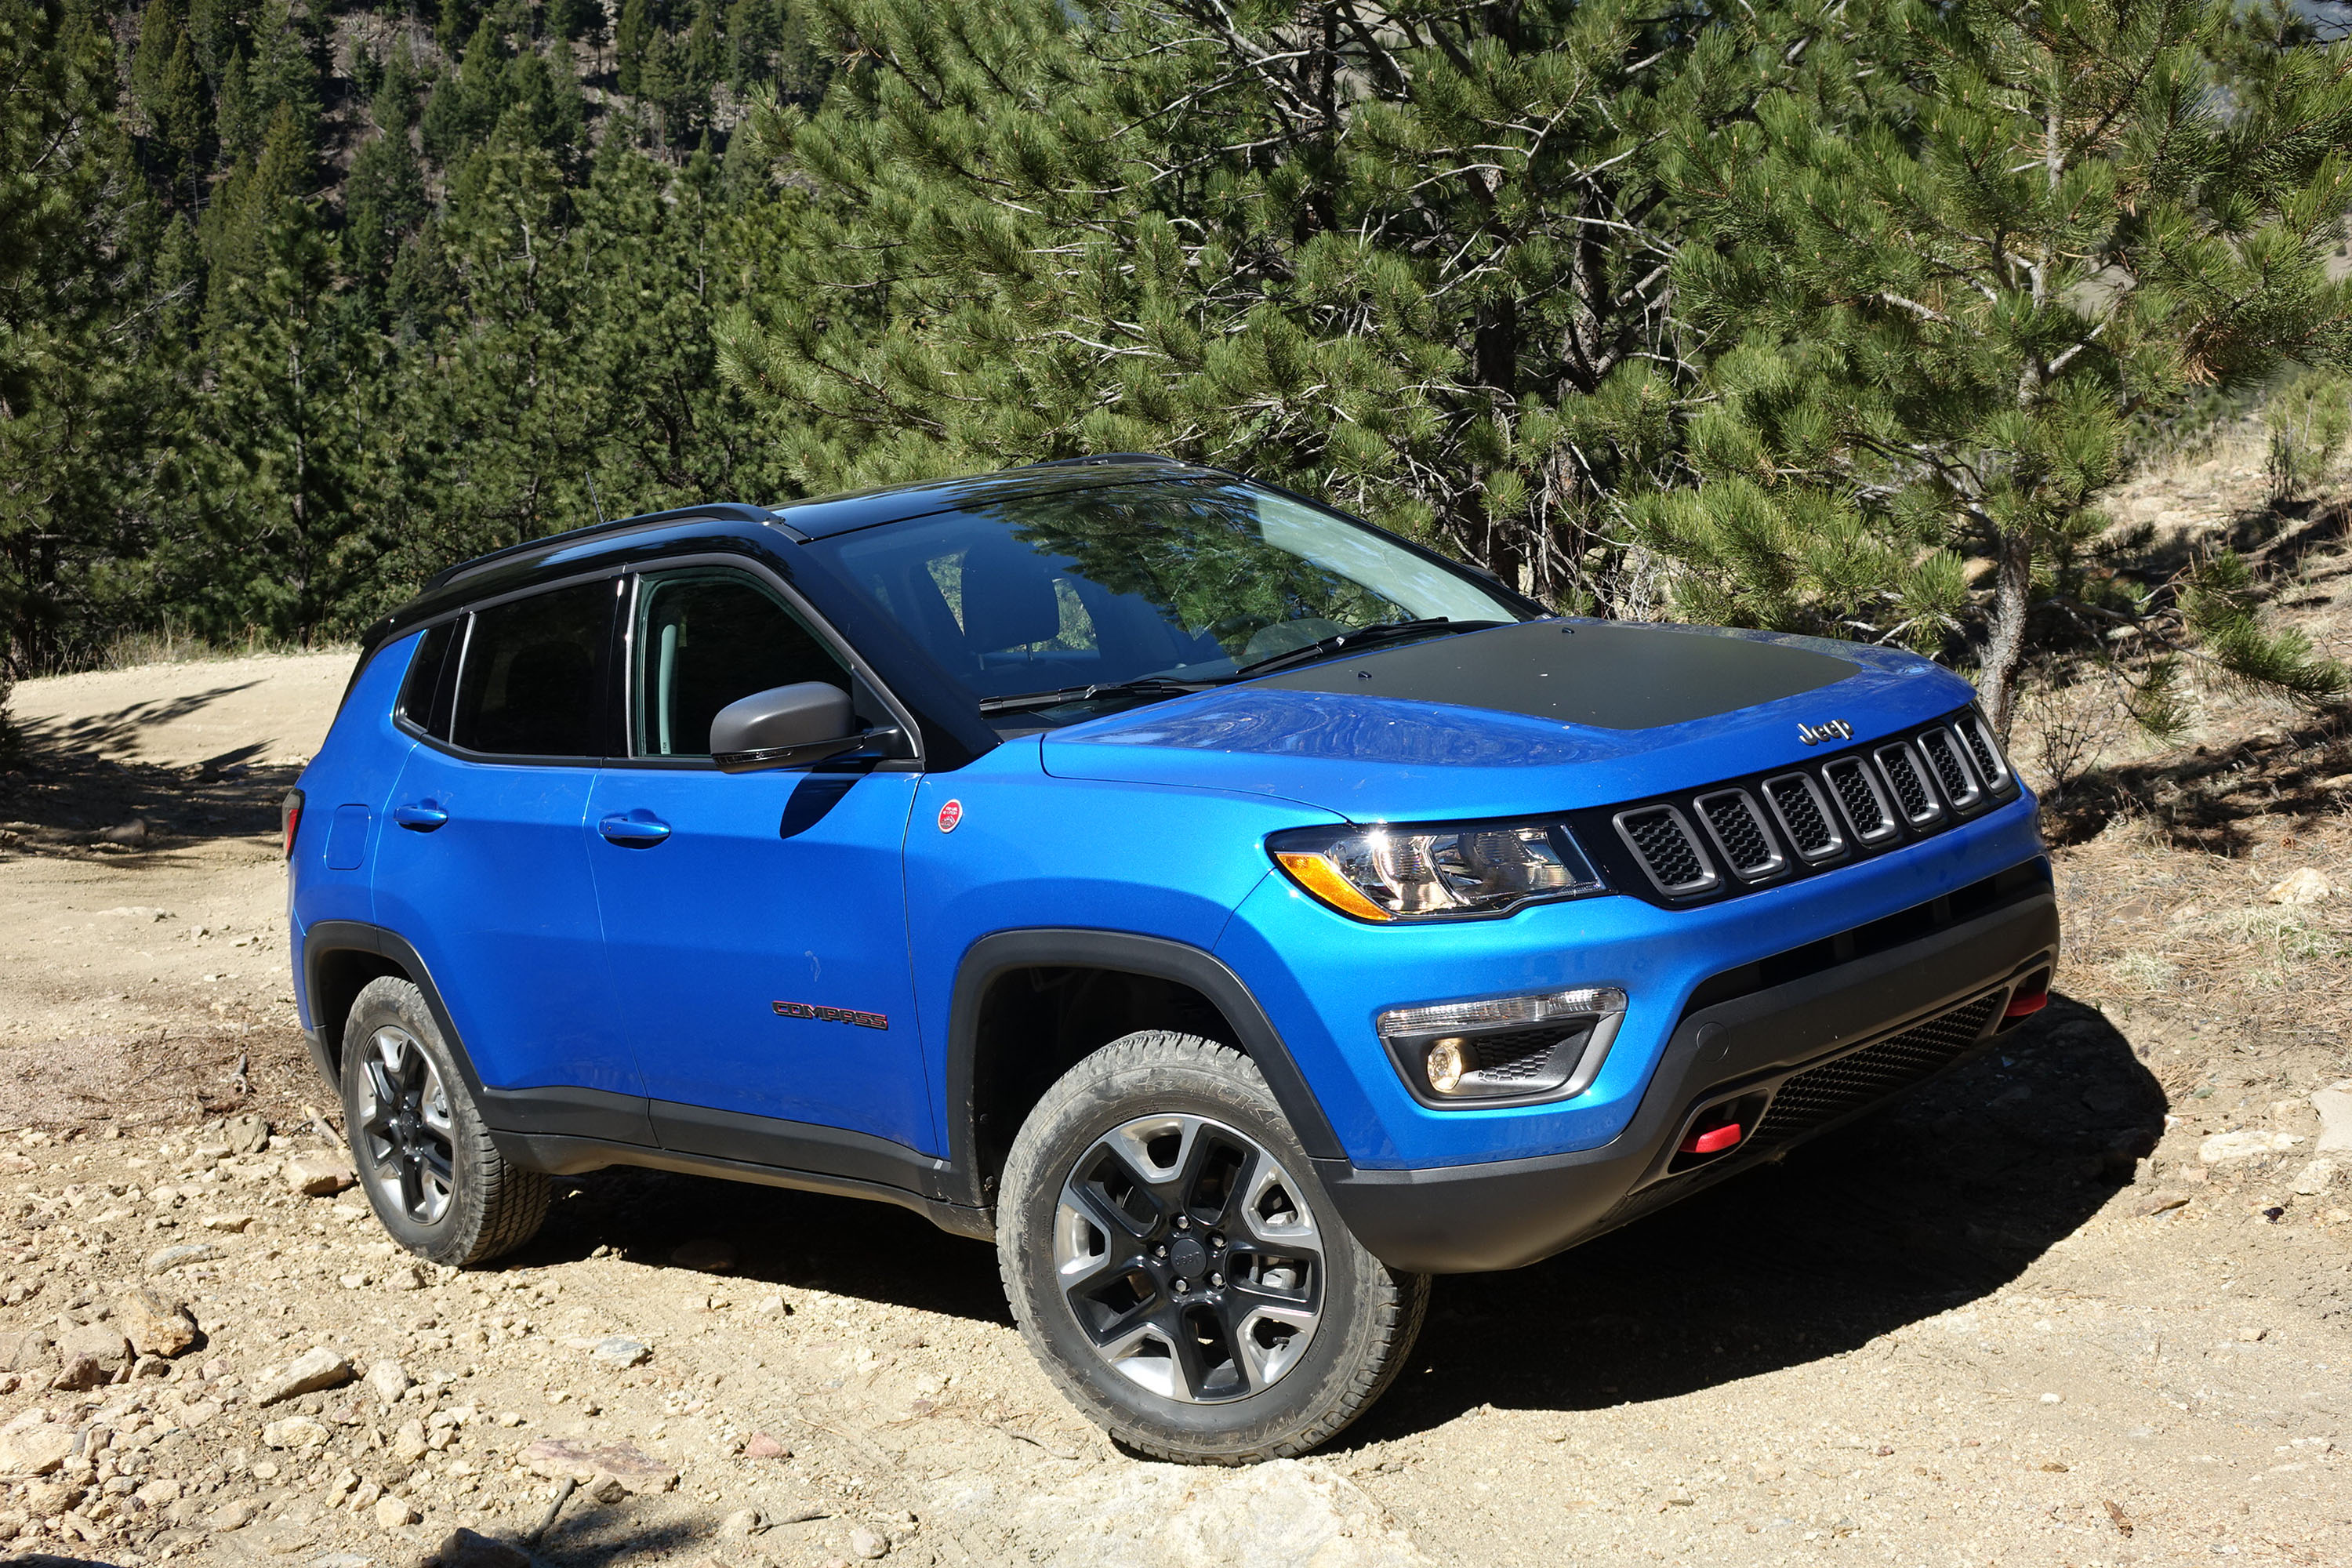 2018 Jeep Compass Off Road Tires